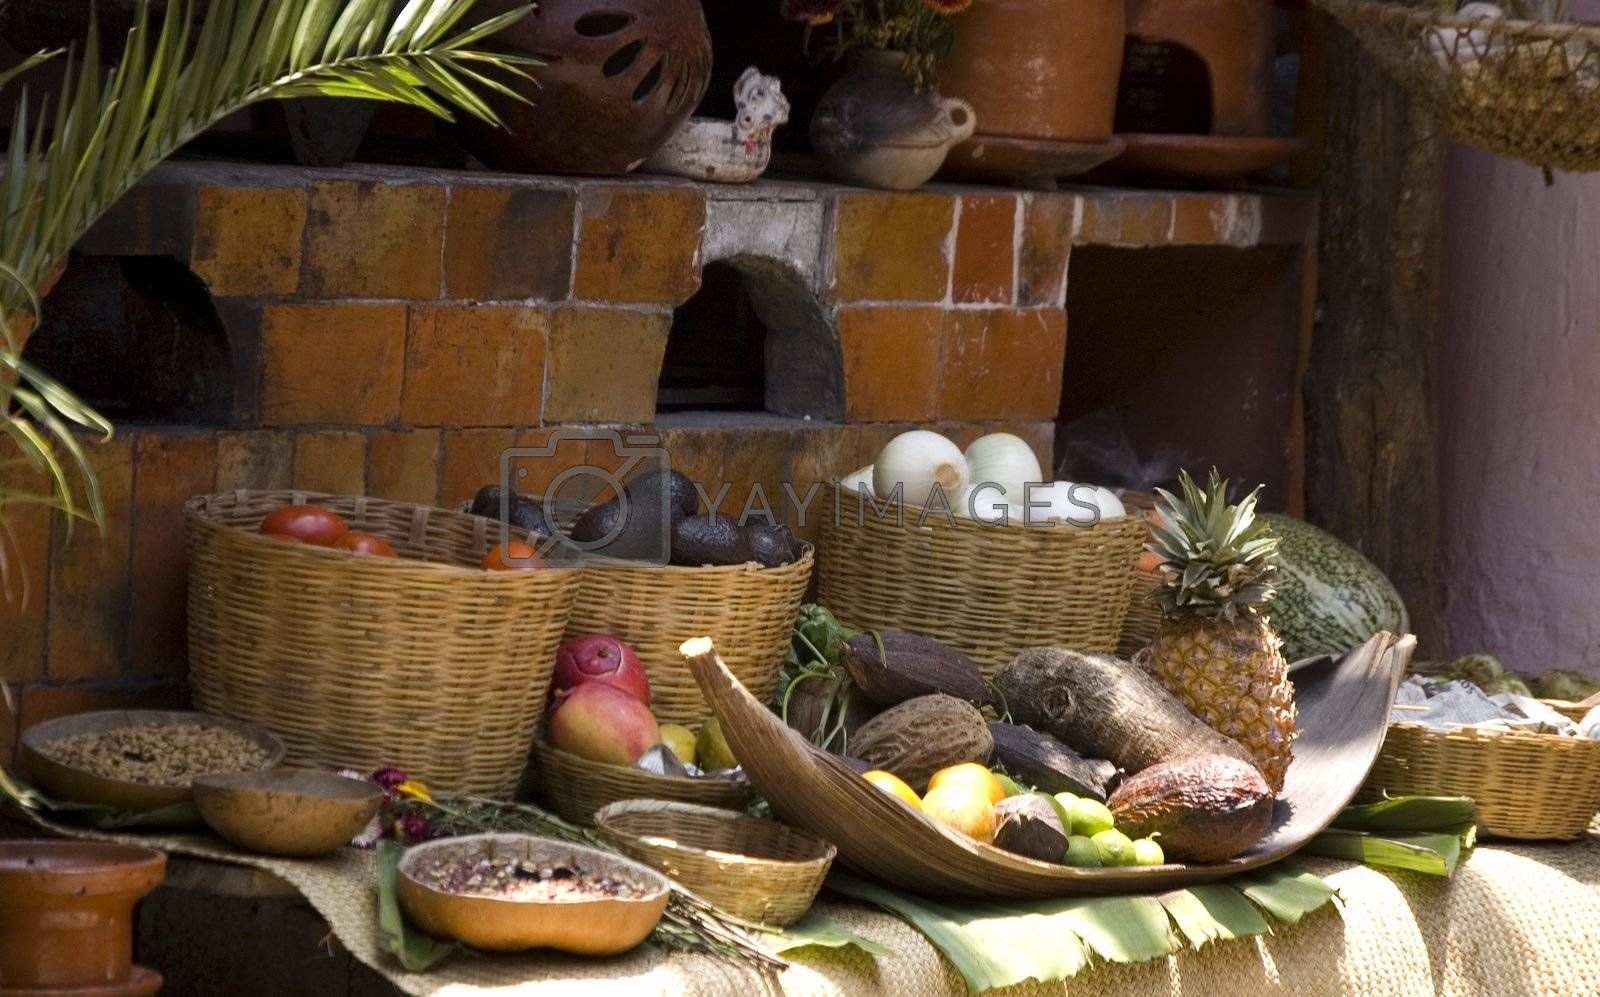 Food display at a mexican restaurant in Chiapas, Mexico